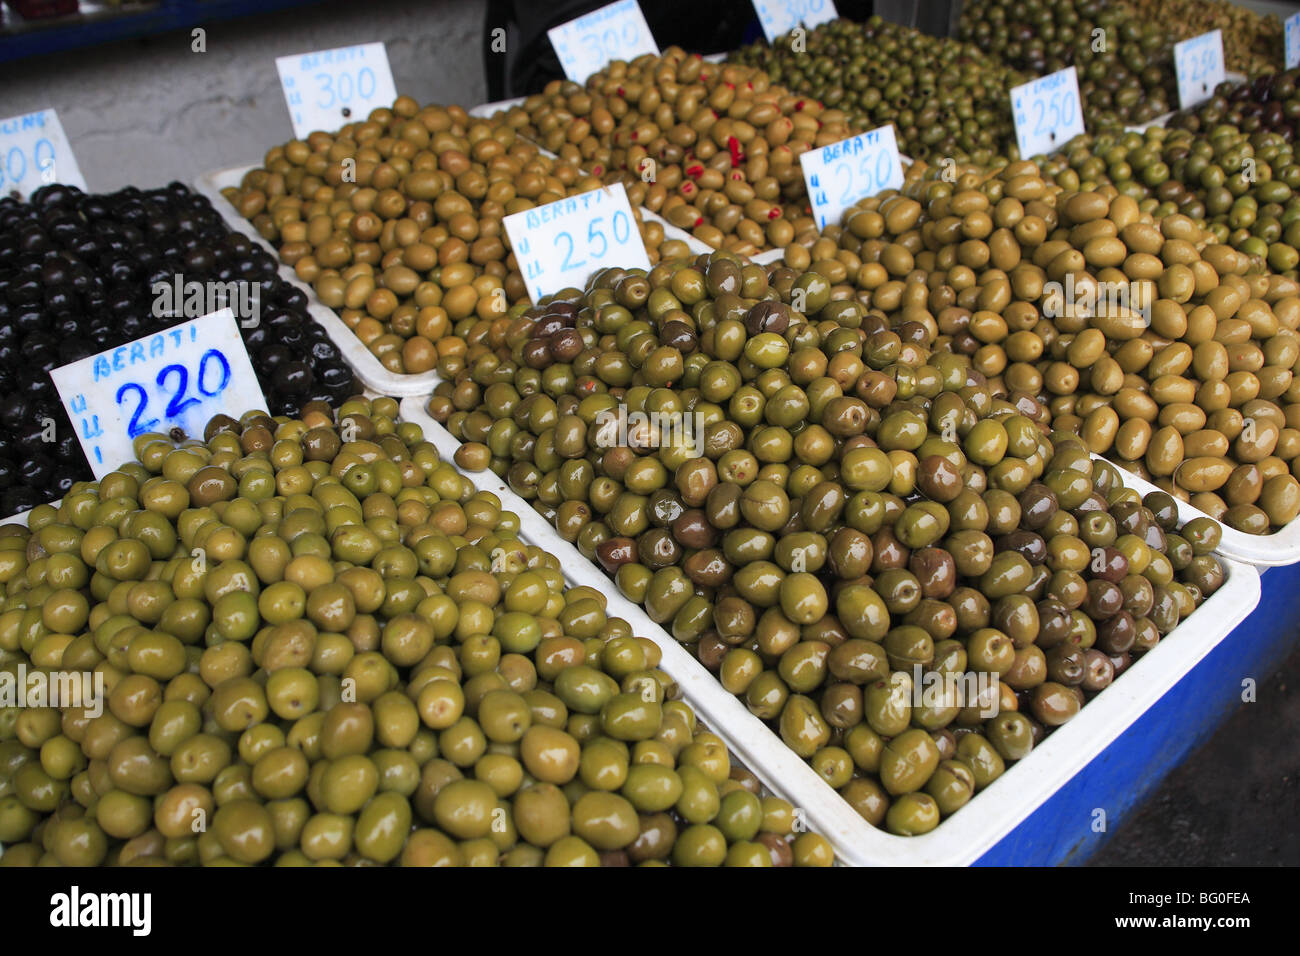 Display of olives in the market of the Avni Rustemi district of Tirana, Albania - Stock Image